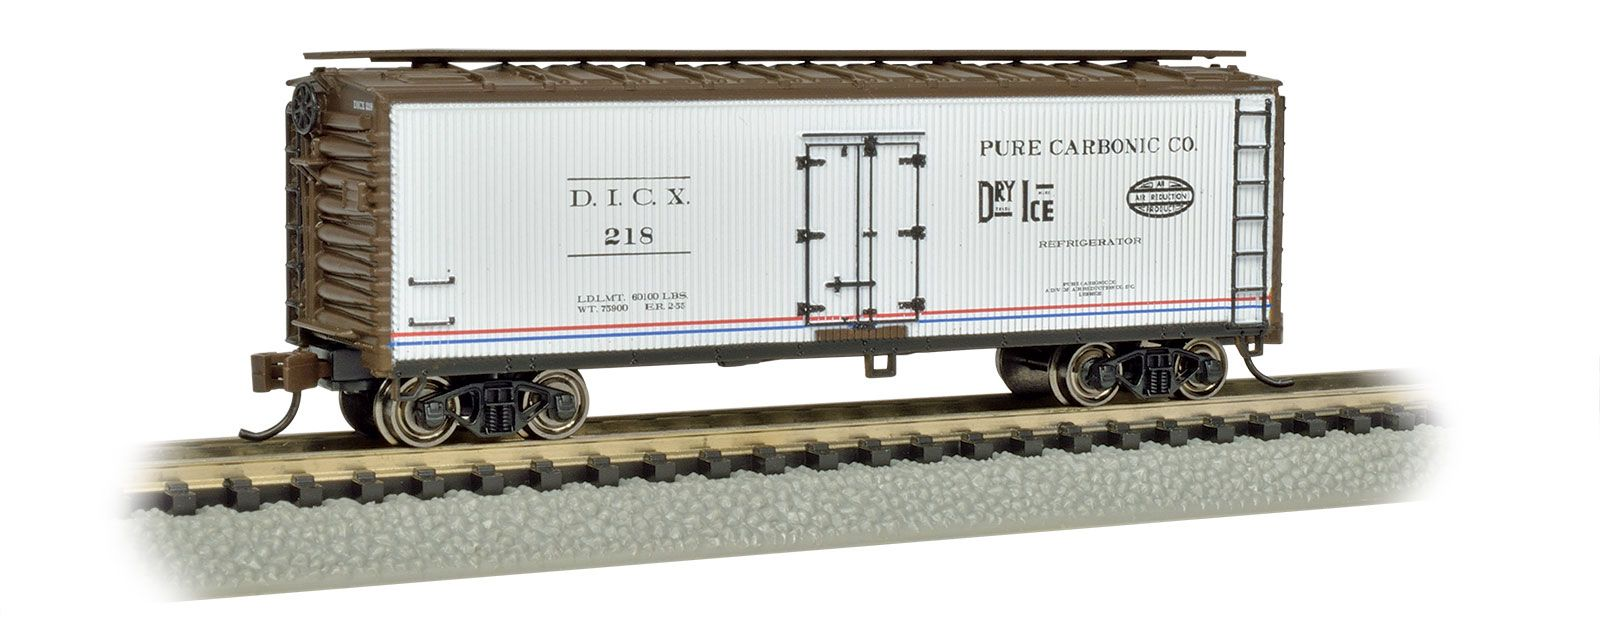 bac0d16d55d5 Bachmann HO Scale Old-Time Baggage Car with Rounded-End Clerestory ...